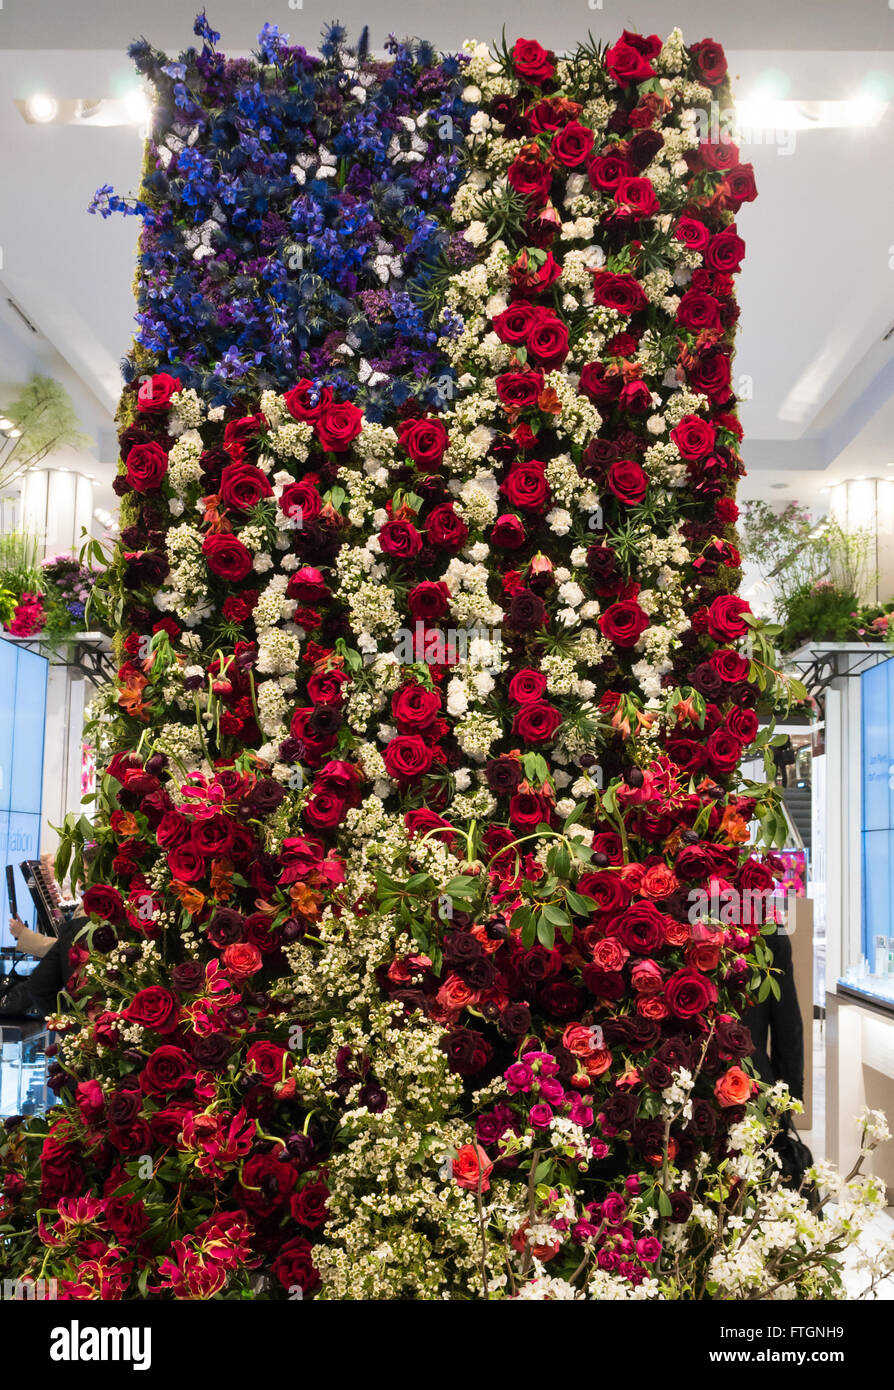 Macys annual flower show the american flag composed of roses and macys annual flower show the american flag composed of roses and other red white and blue flowers mightylinksfo